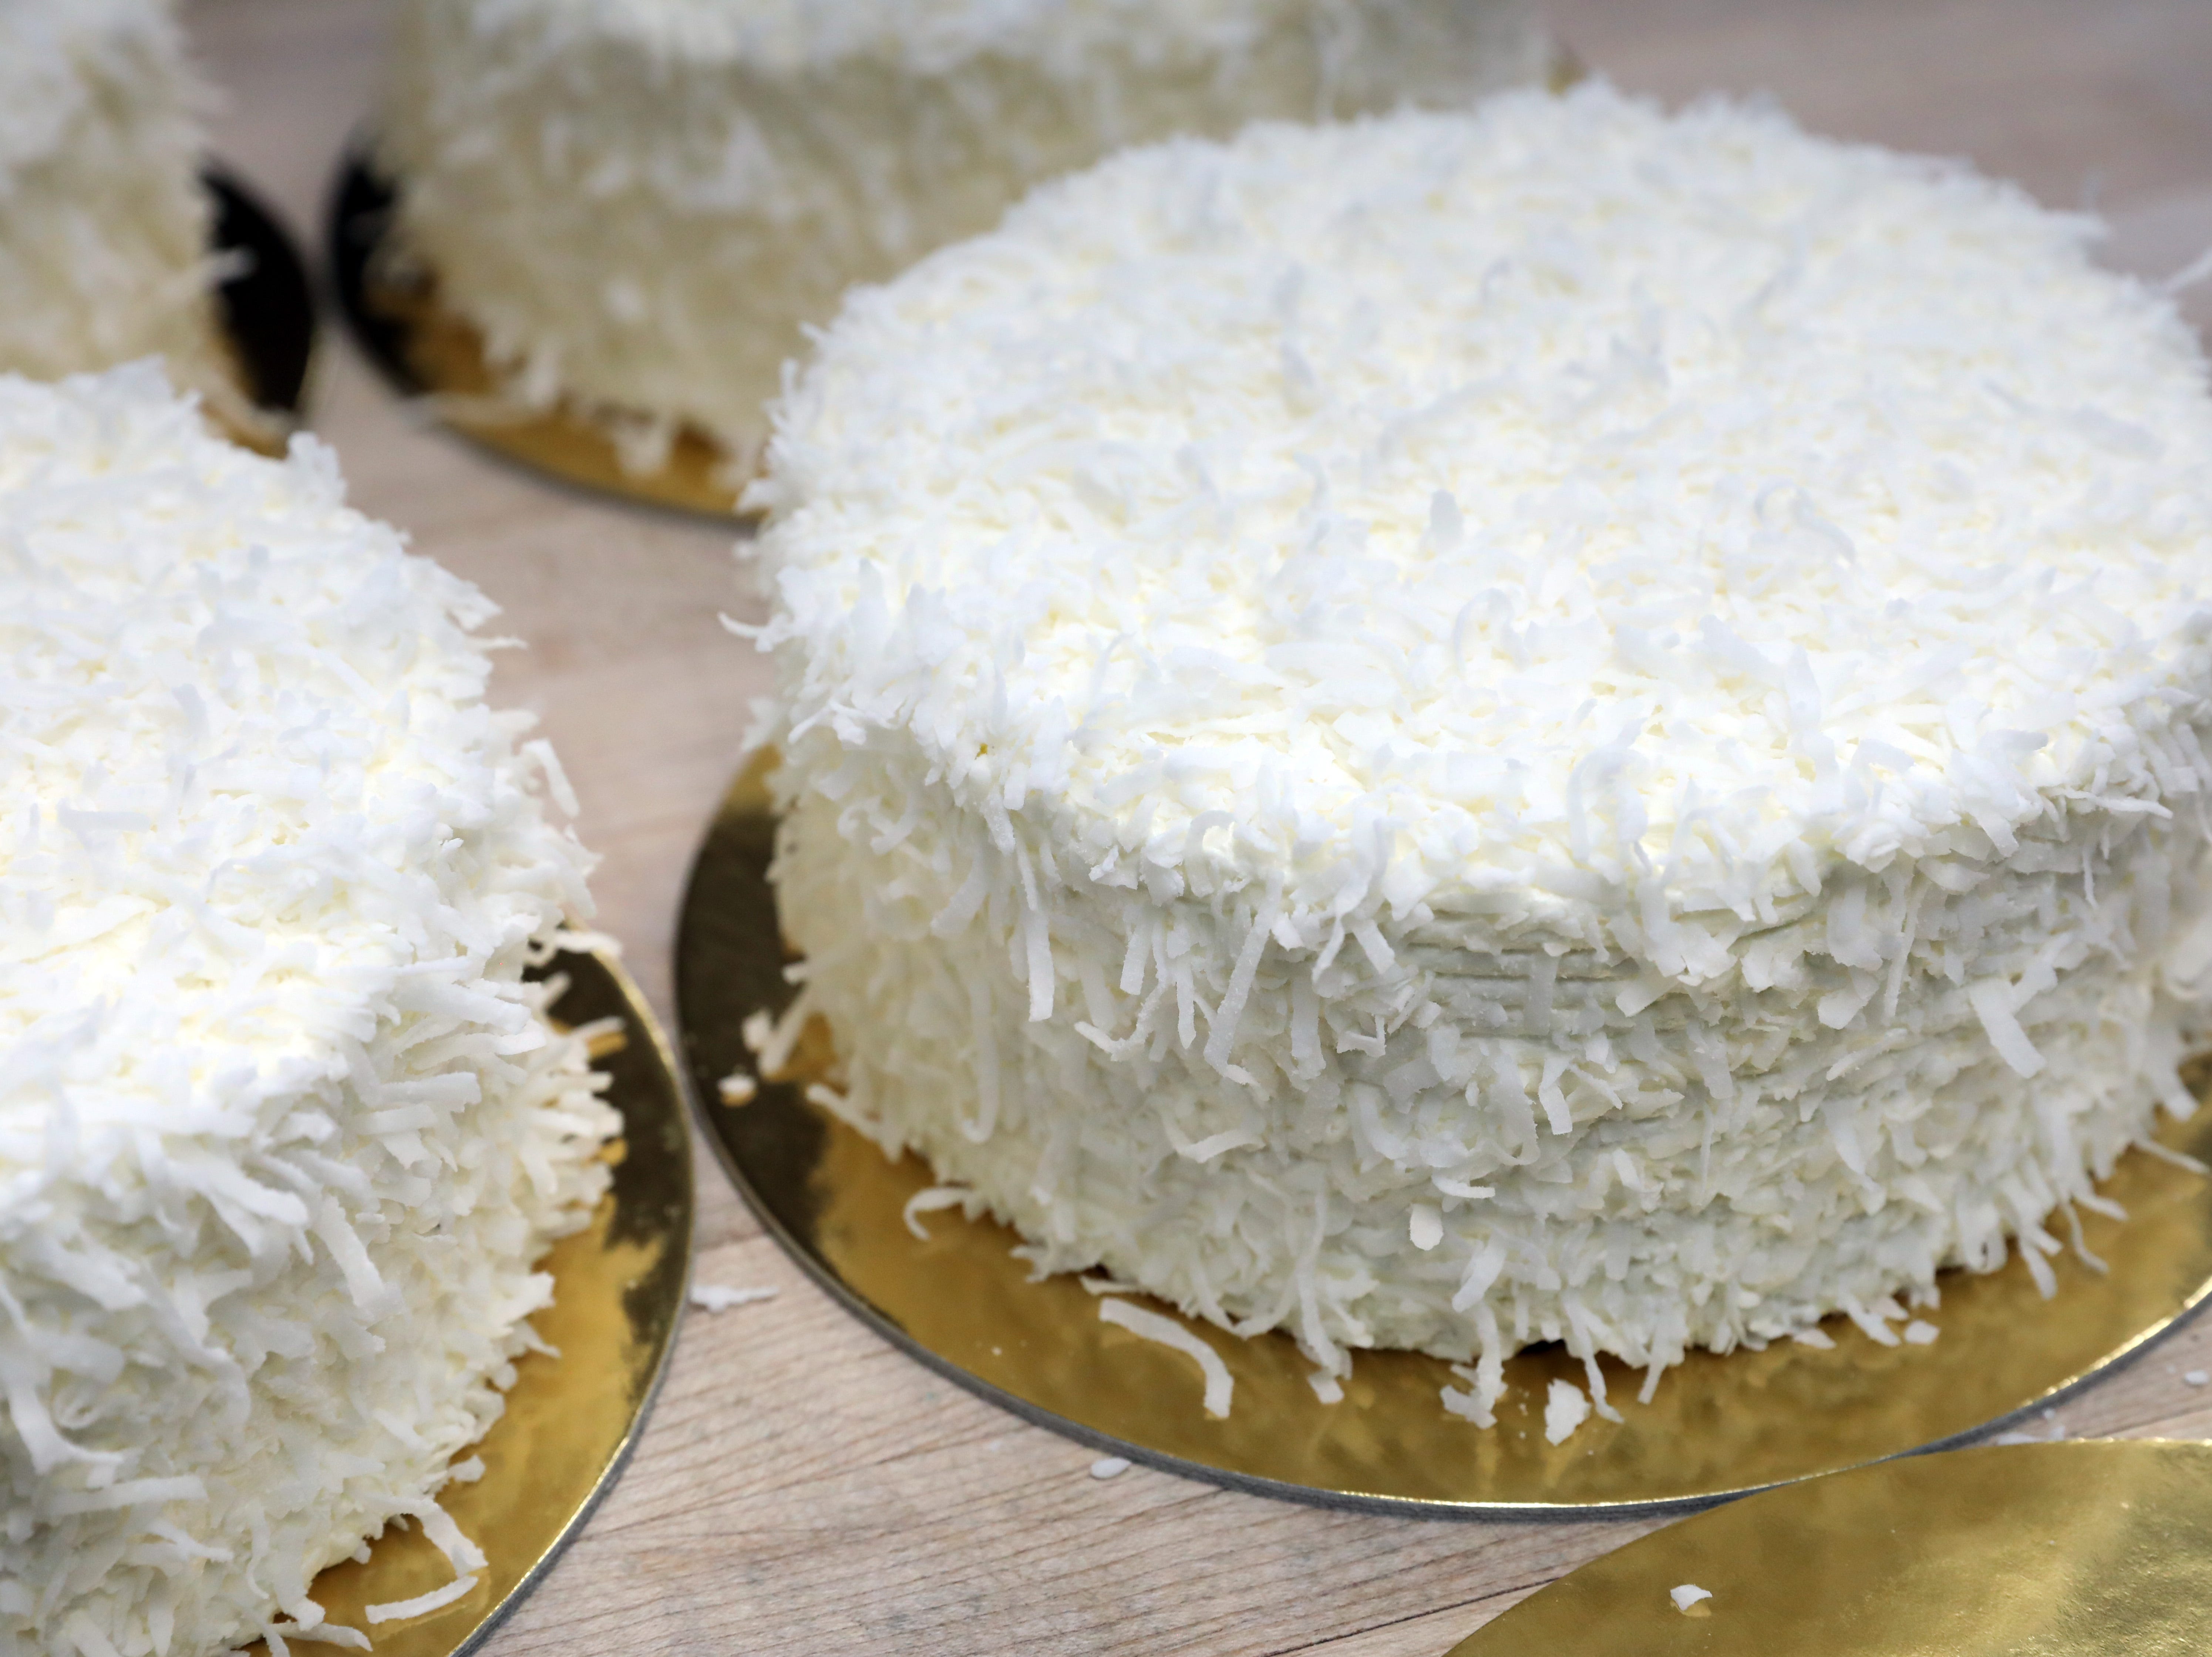 Freshly made coconut cakes at Martine's Fine Bake Shoppe in Tuckahoe Nov. 29, 2018. The family bakery, which has a second location in Scarsdale, is celebrating their 10th anniversary in business.